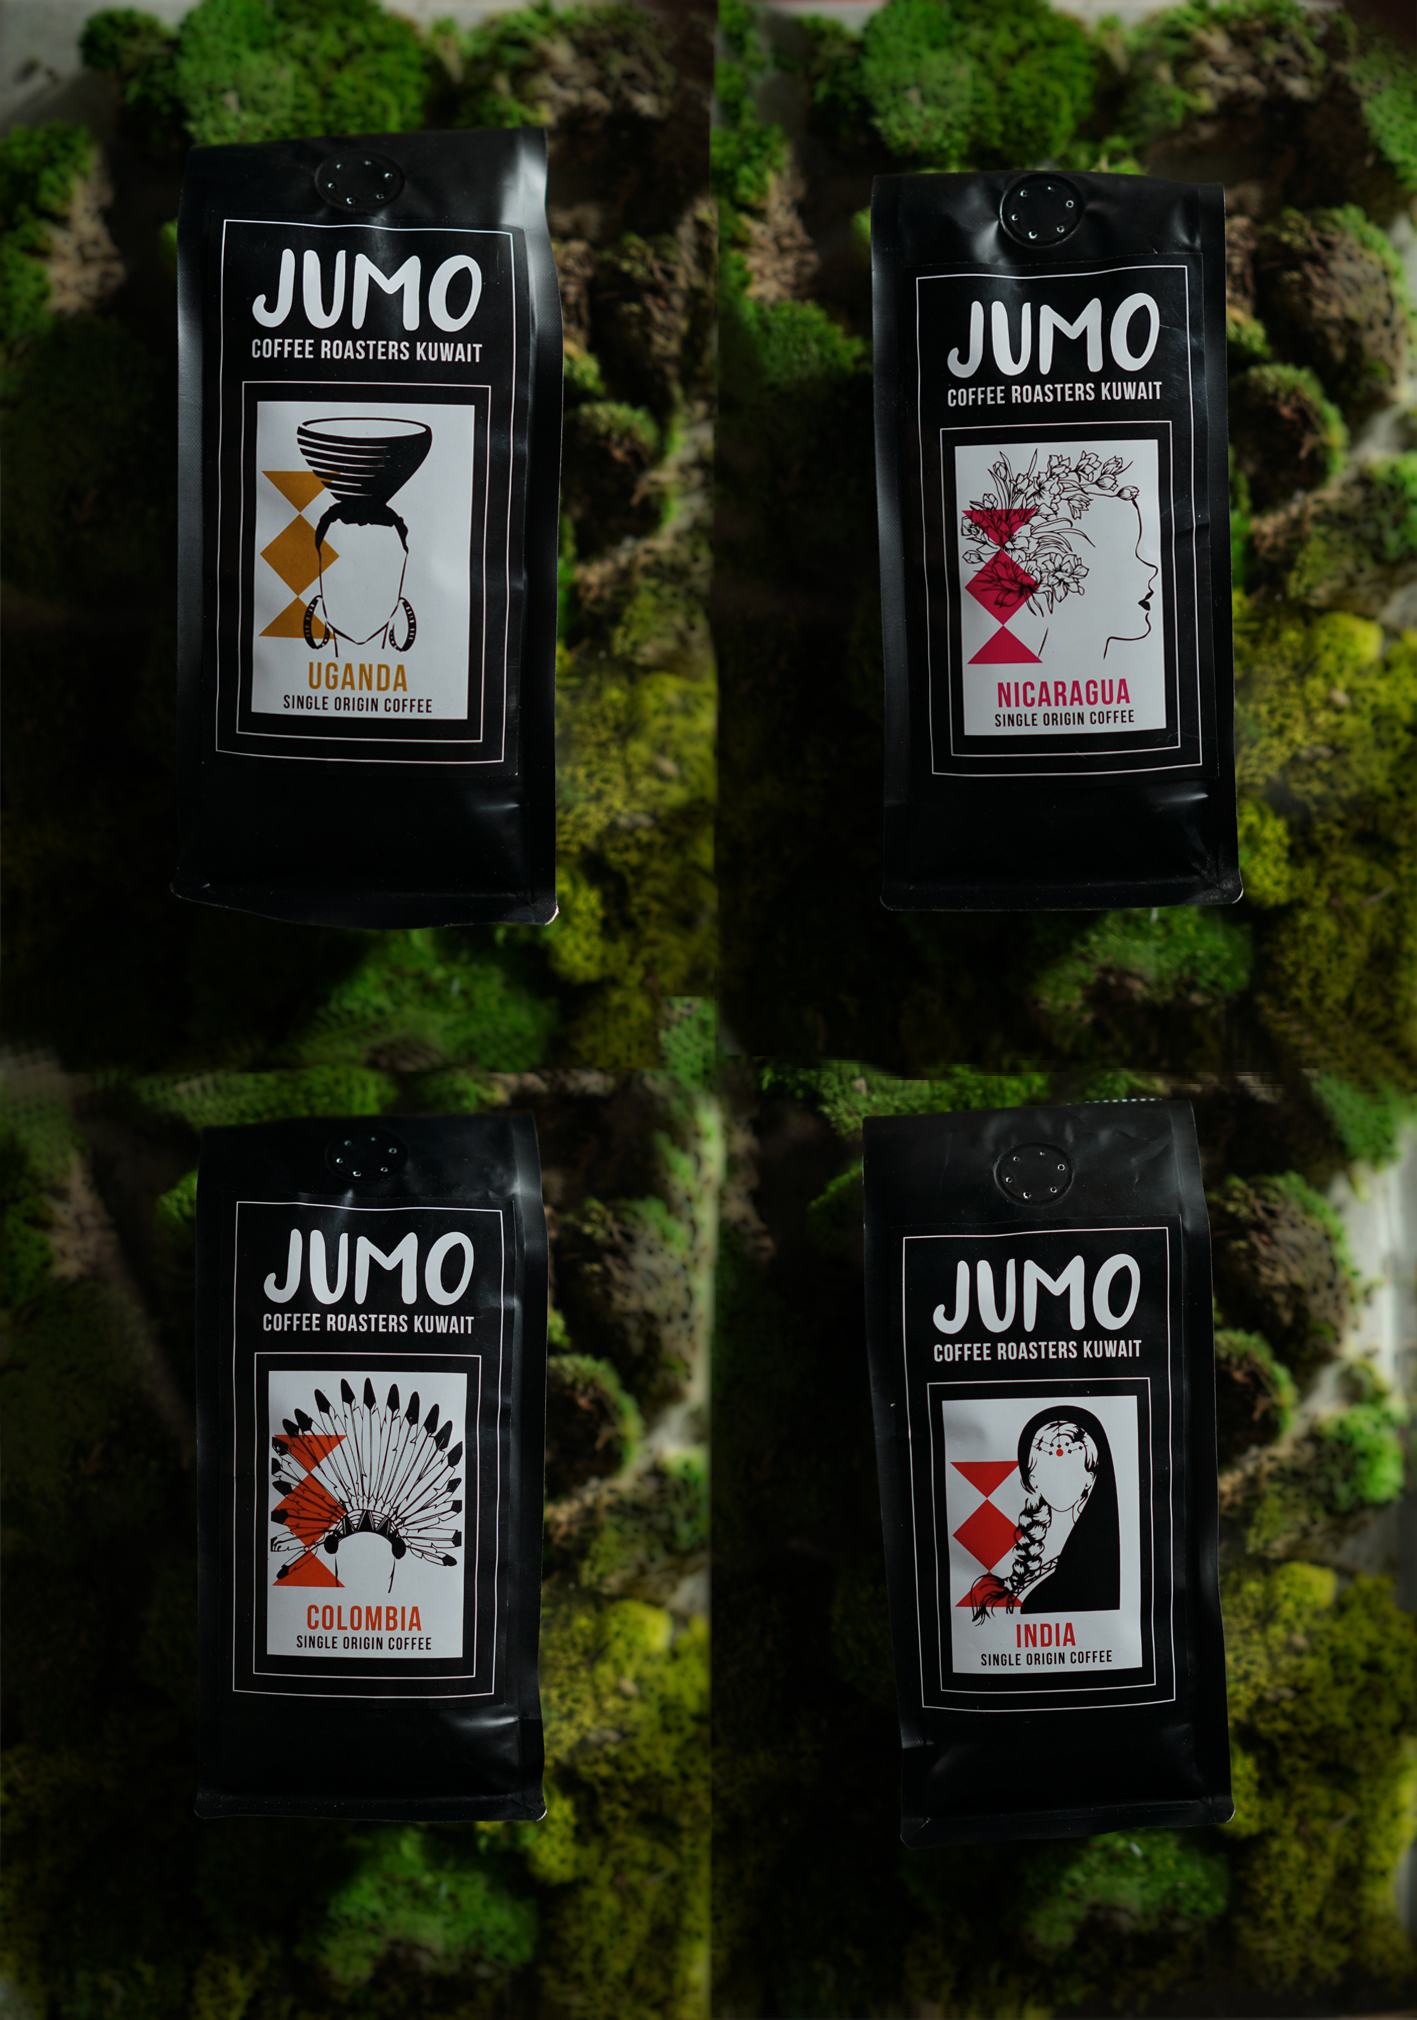 Jumo Coffee Roasters is an artisanal coffee company to the core. By craft-roasting the world's best coffee, we supply cafés and restaurants with our high quality beans. -